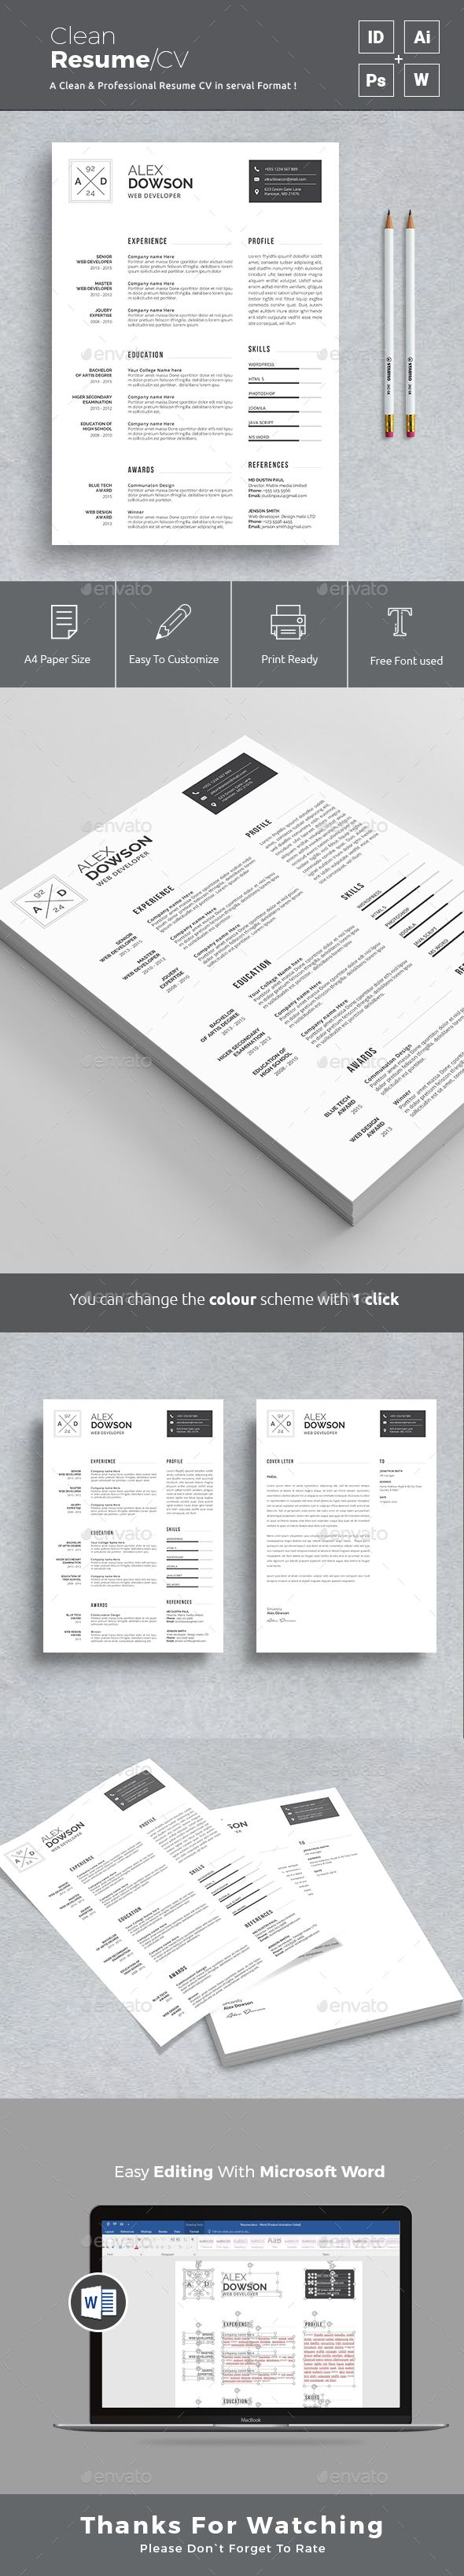 best ideas about resume design resume resume 17 best ideas about resume design resume resume writing and cv design